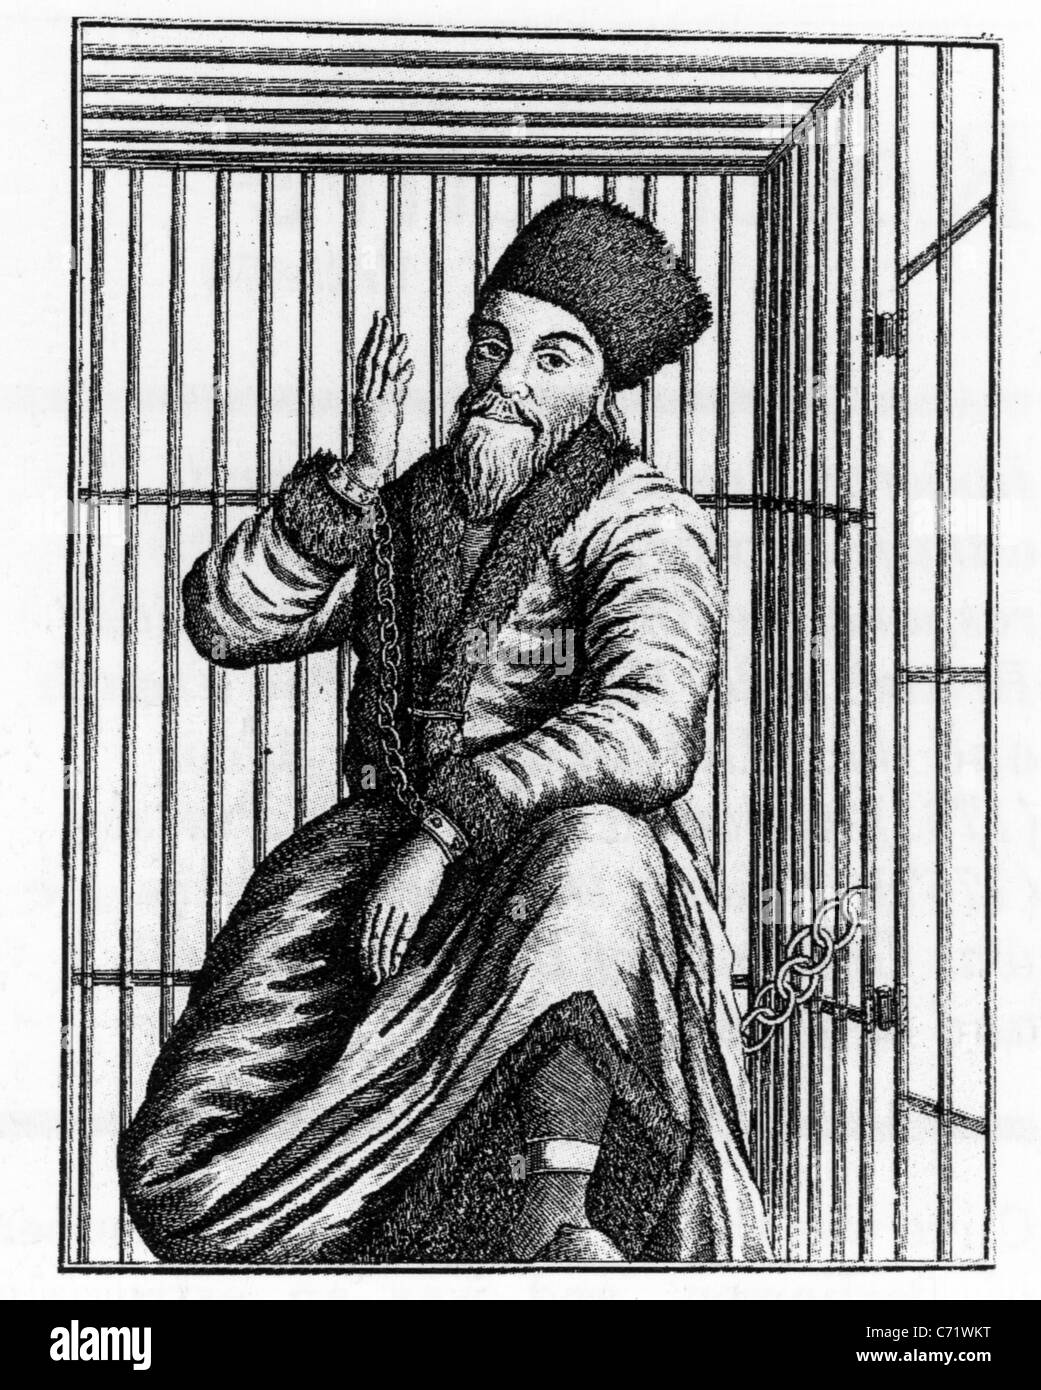 YEMELYAN PUGACHEV (c 1742-1775) Pretender to Russian throne who led a Cossack rebellion. Shown here caged before - Stock Image